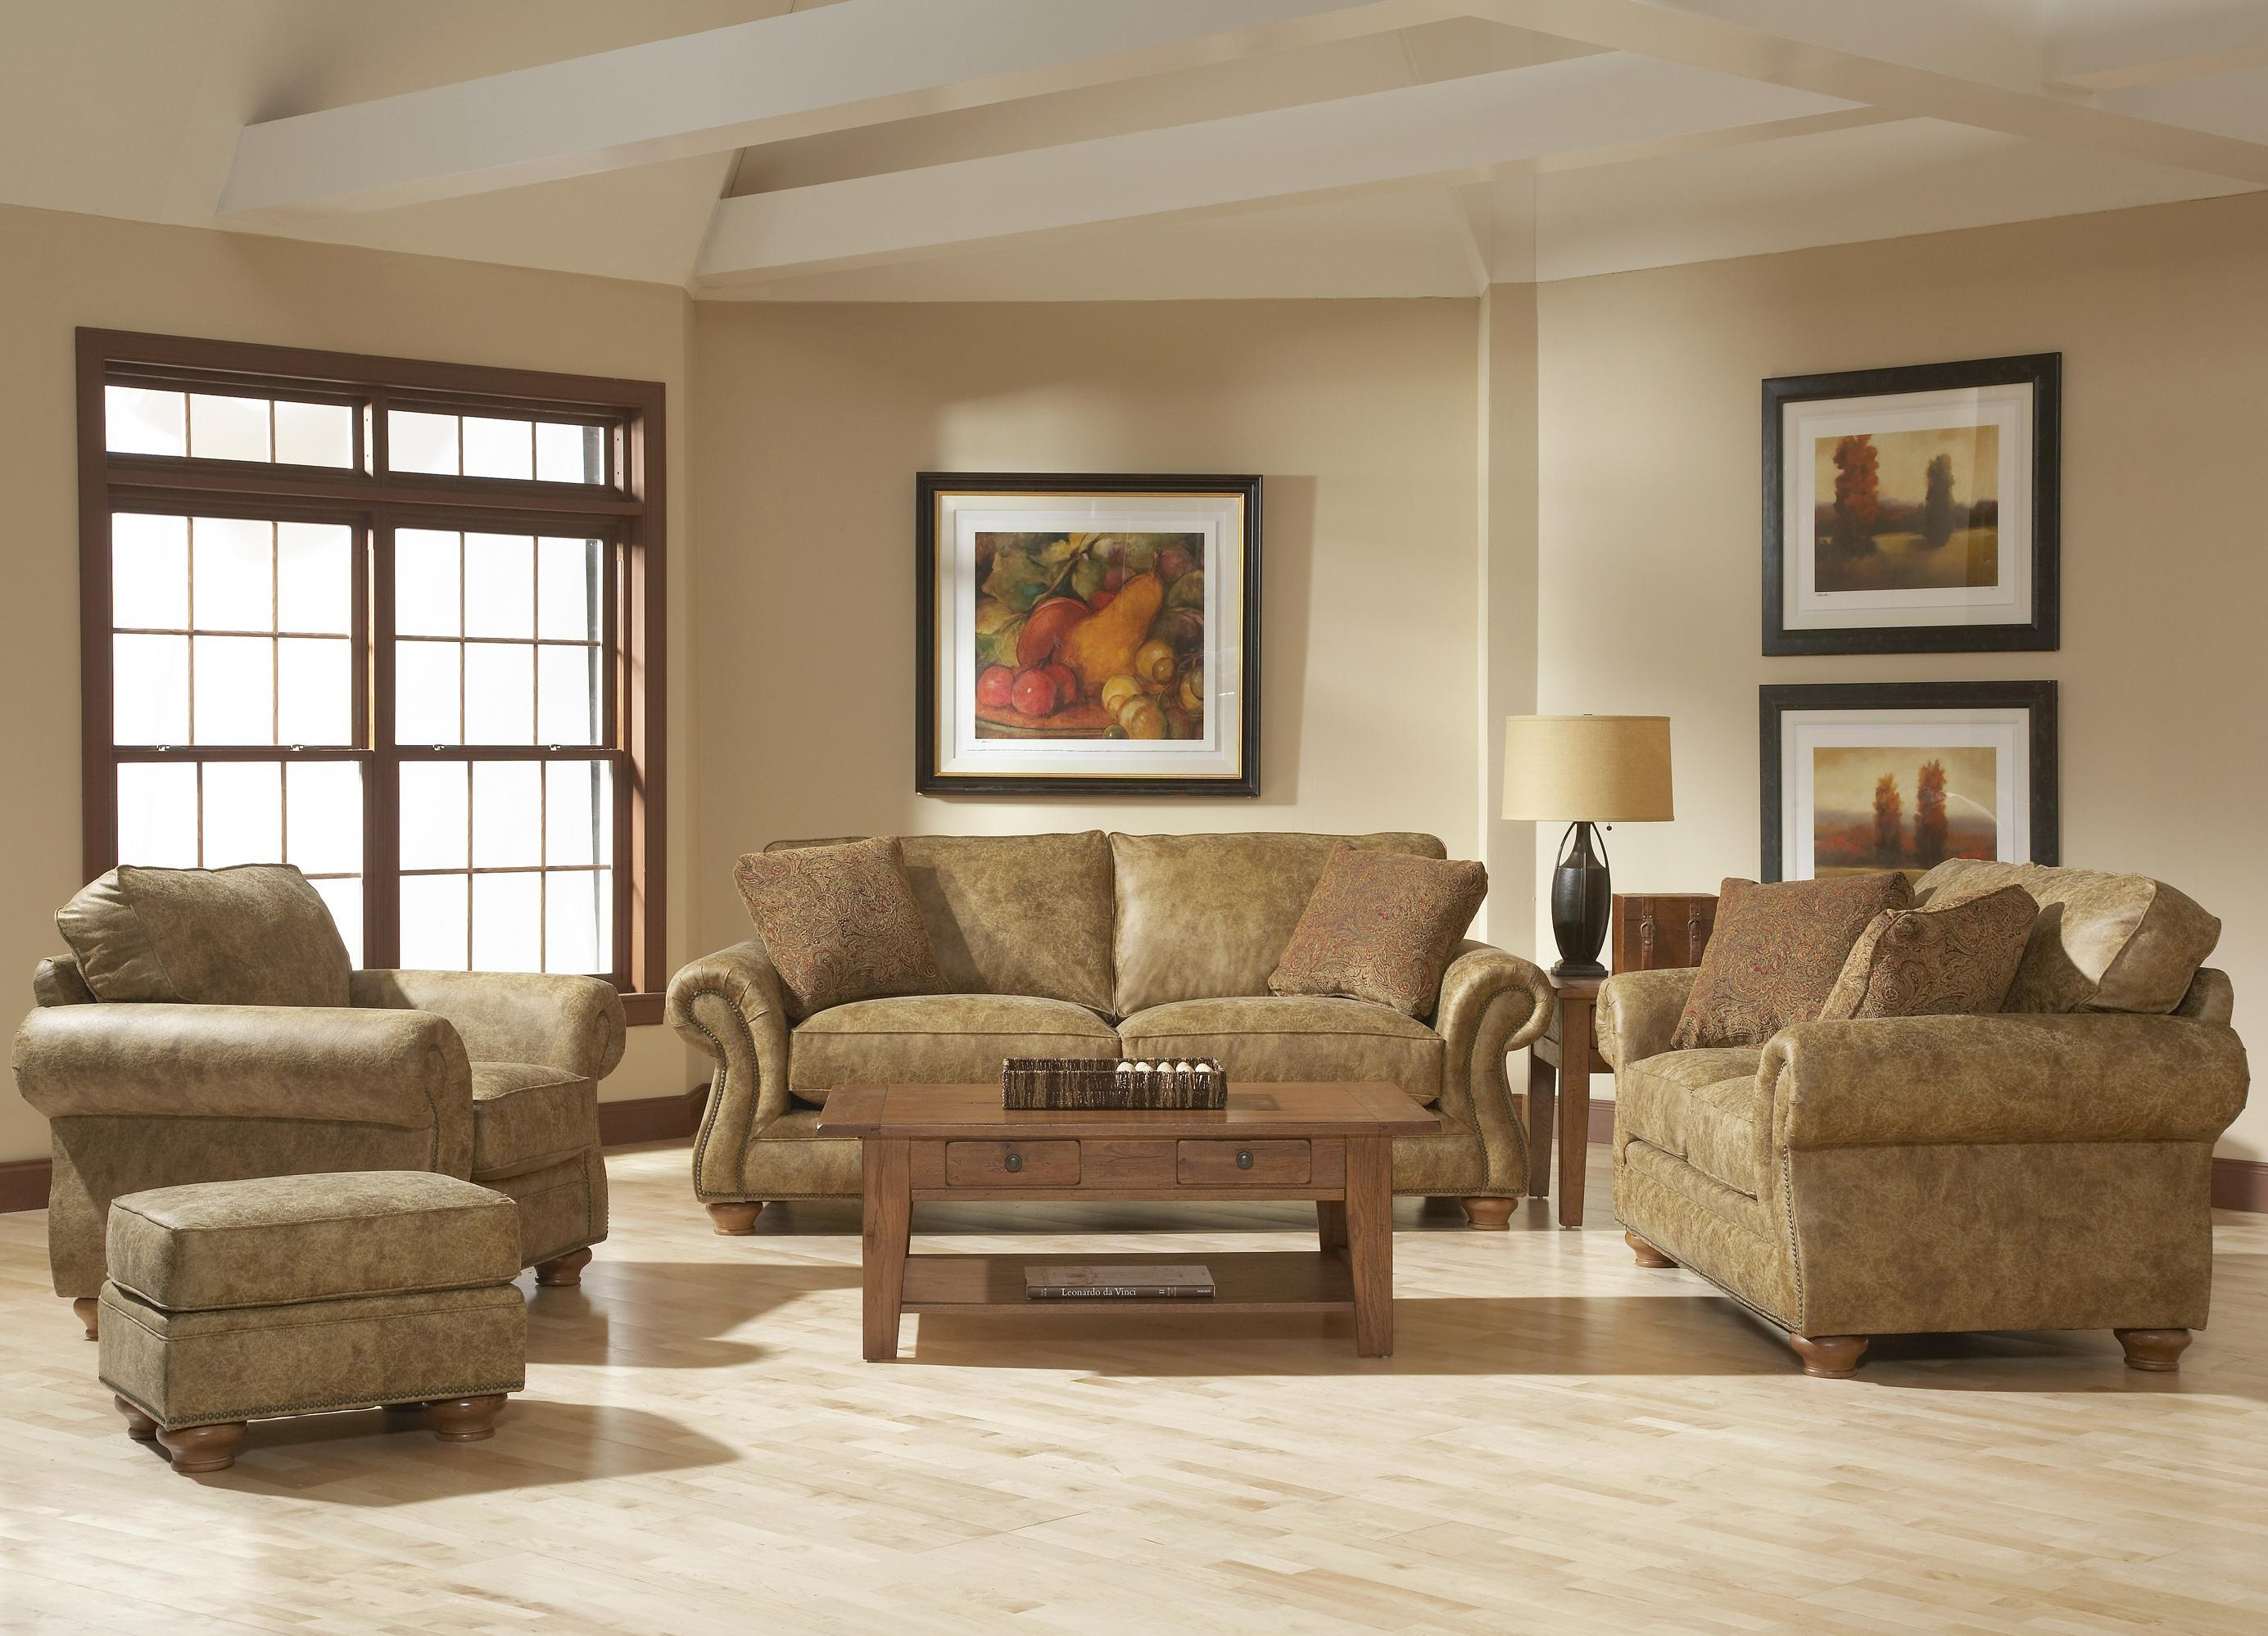 Broyhill Furniture Laramie 3 Piece Wedge Sectional Sofa – Wayside Throughout Broyhill Reclining Sofas (View 11 of 20)